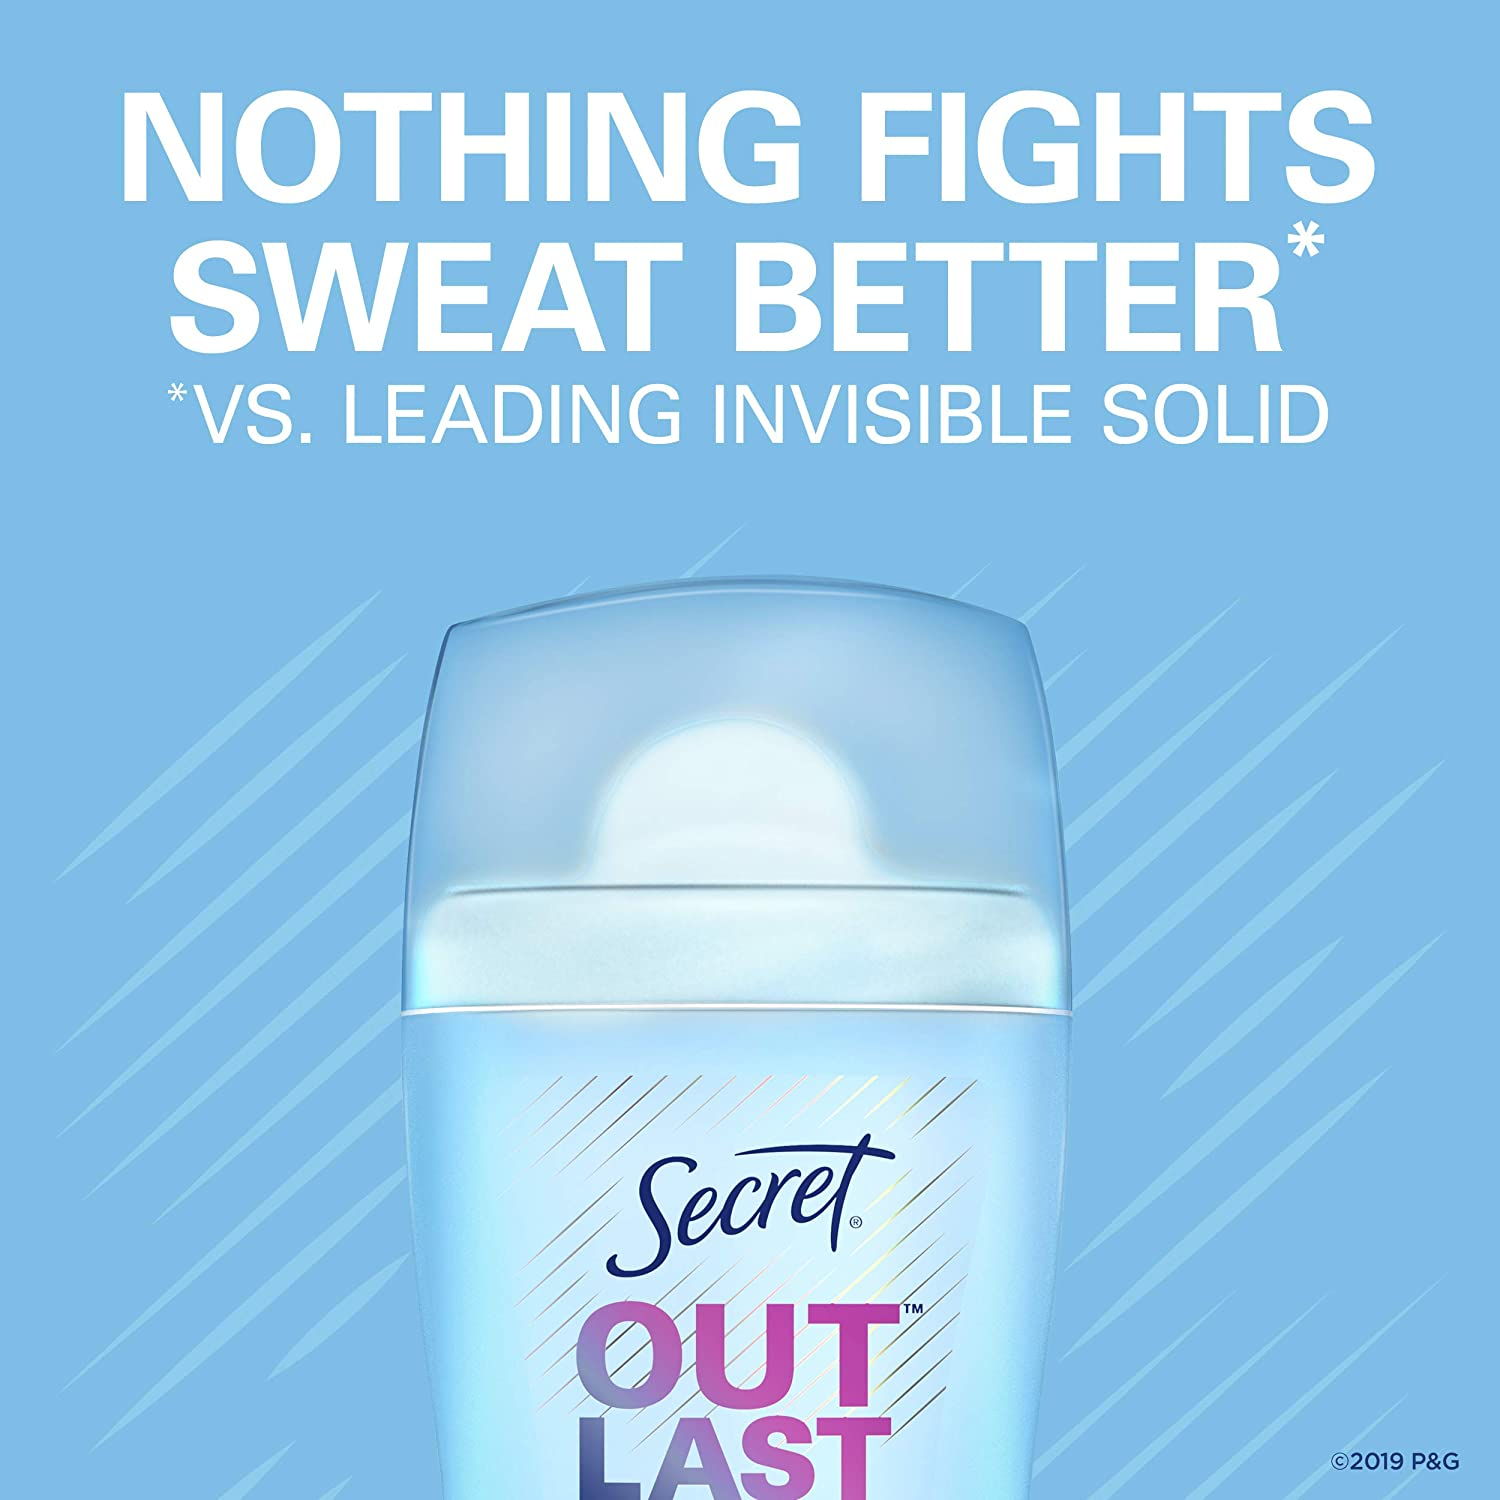 Secret Outlast Invisible Solid Antiperspirant Deodorant for Women, Completely Clean, 2.6 oz, pack of 3 : Beauty